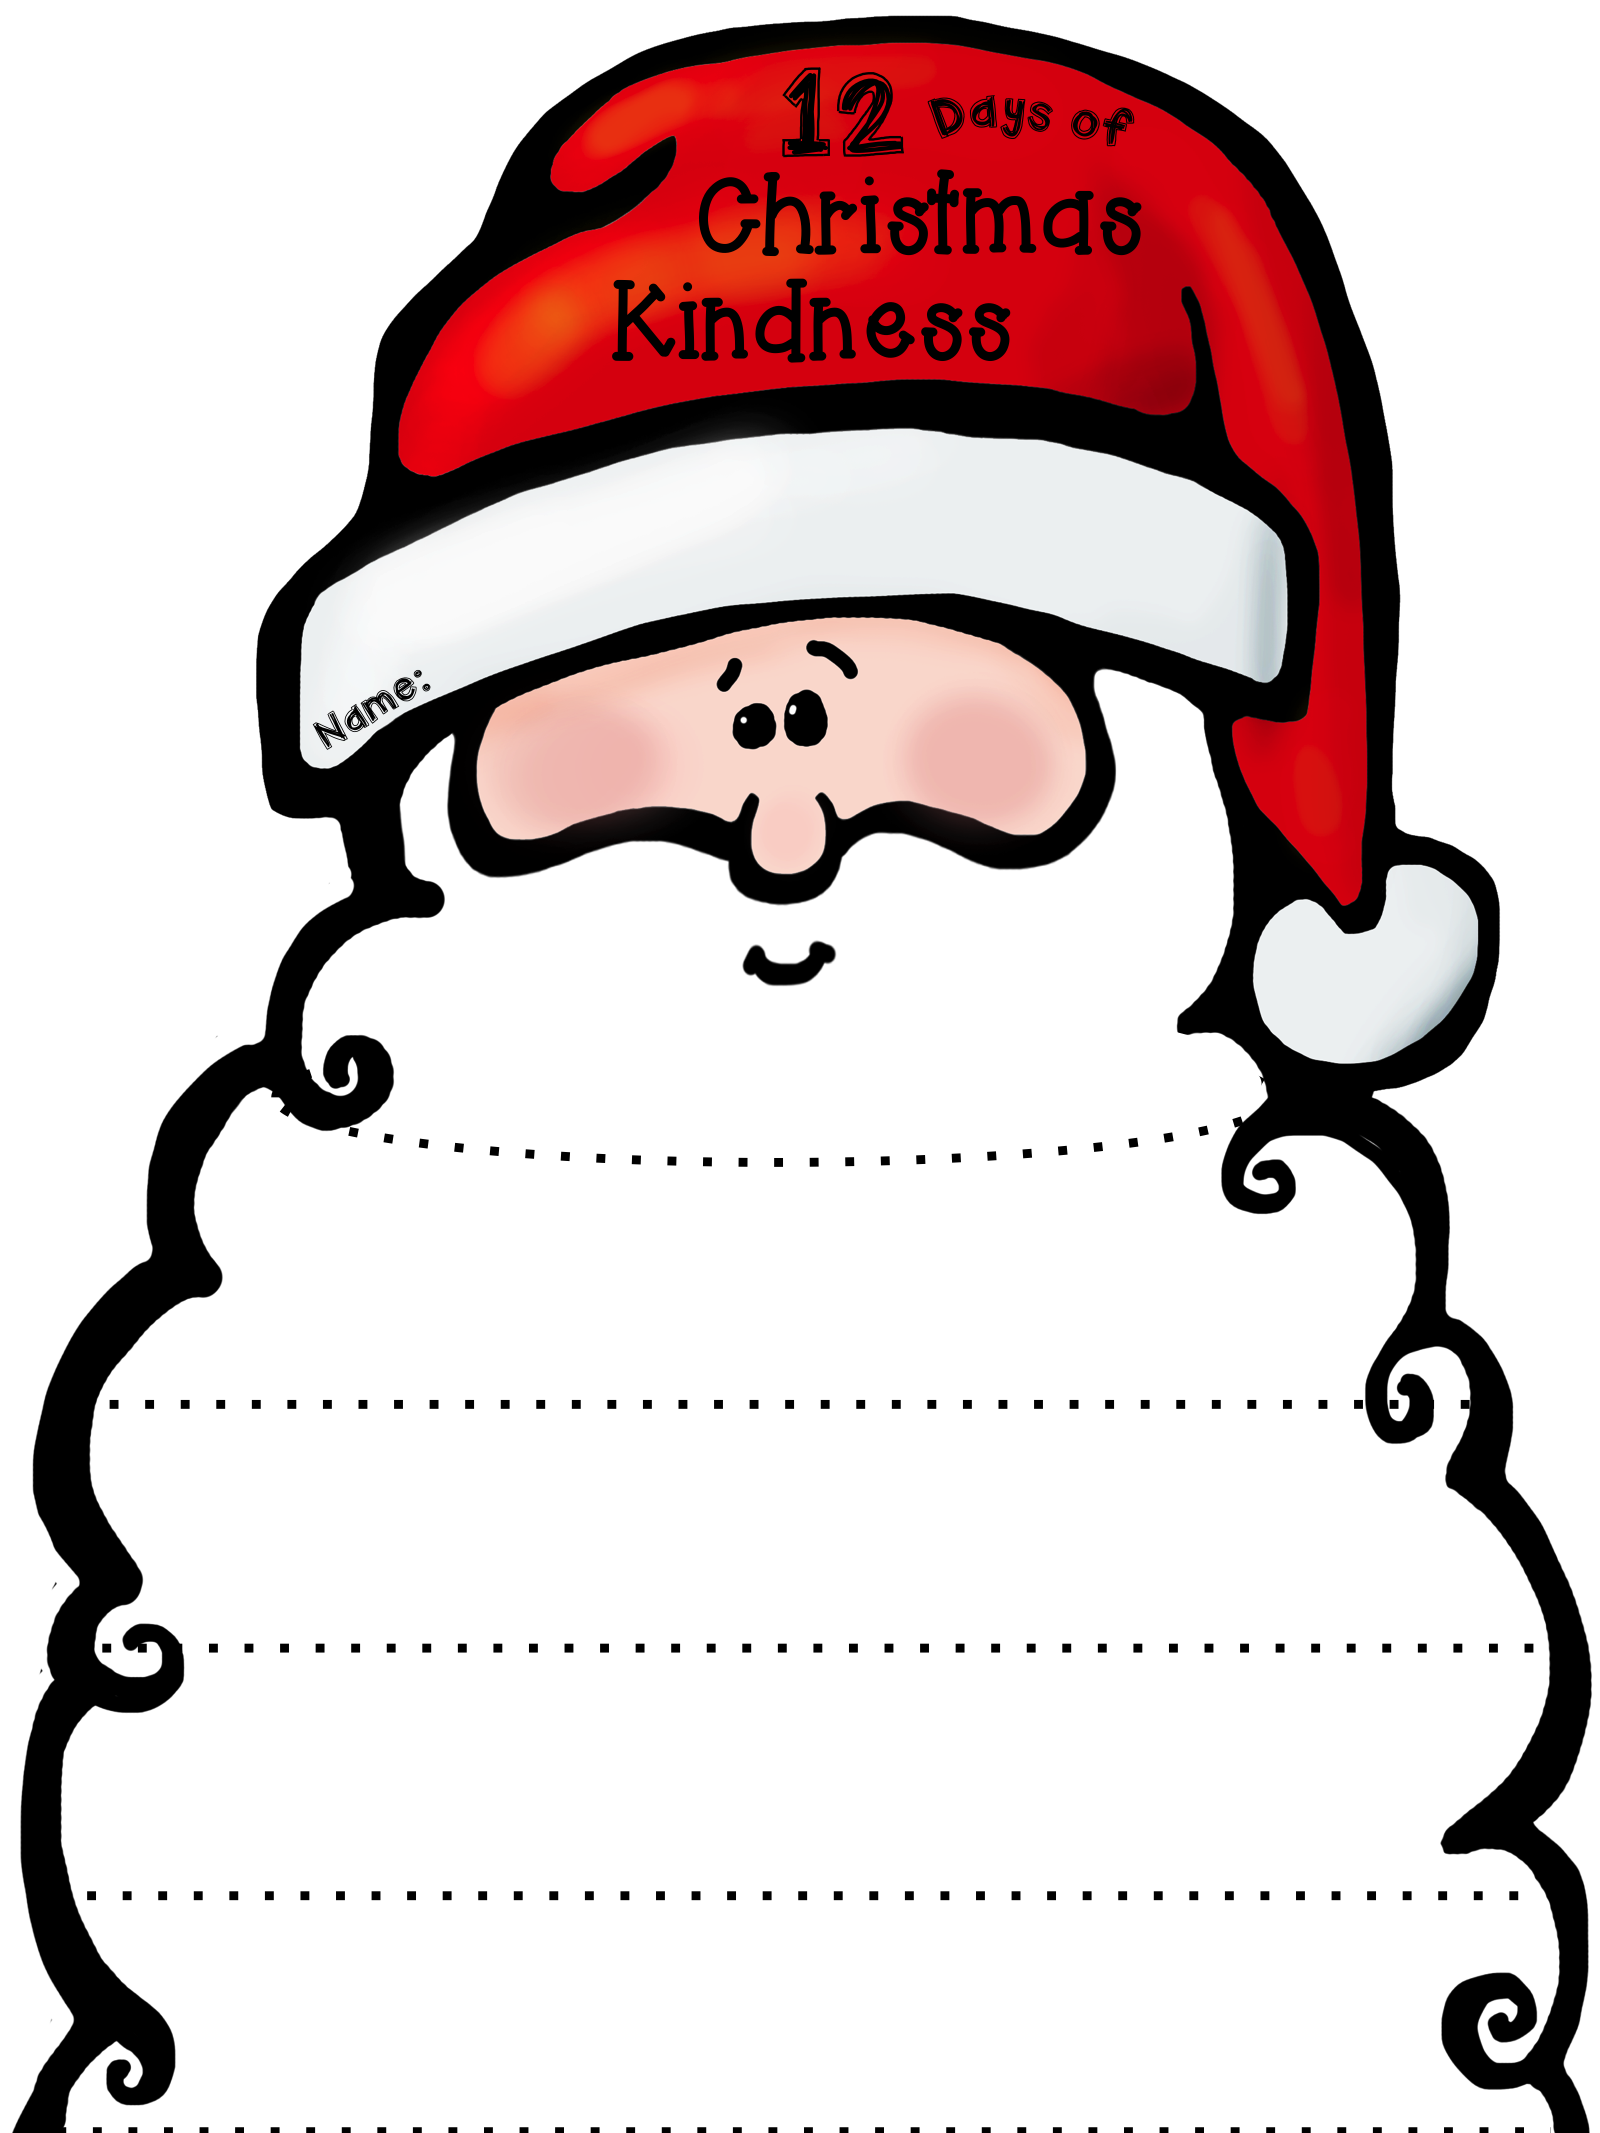 Christmas kindness christmas winter crafts pinterest fun 12 days of christmas kindness free template for a fun activity where students trim santas beard with each act of kindness they do editable maxwellsz